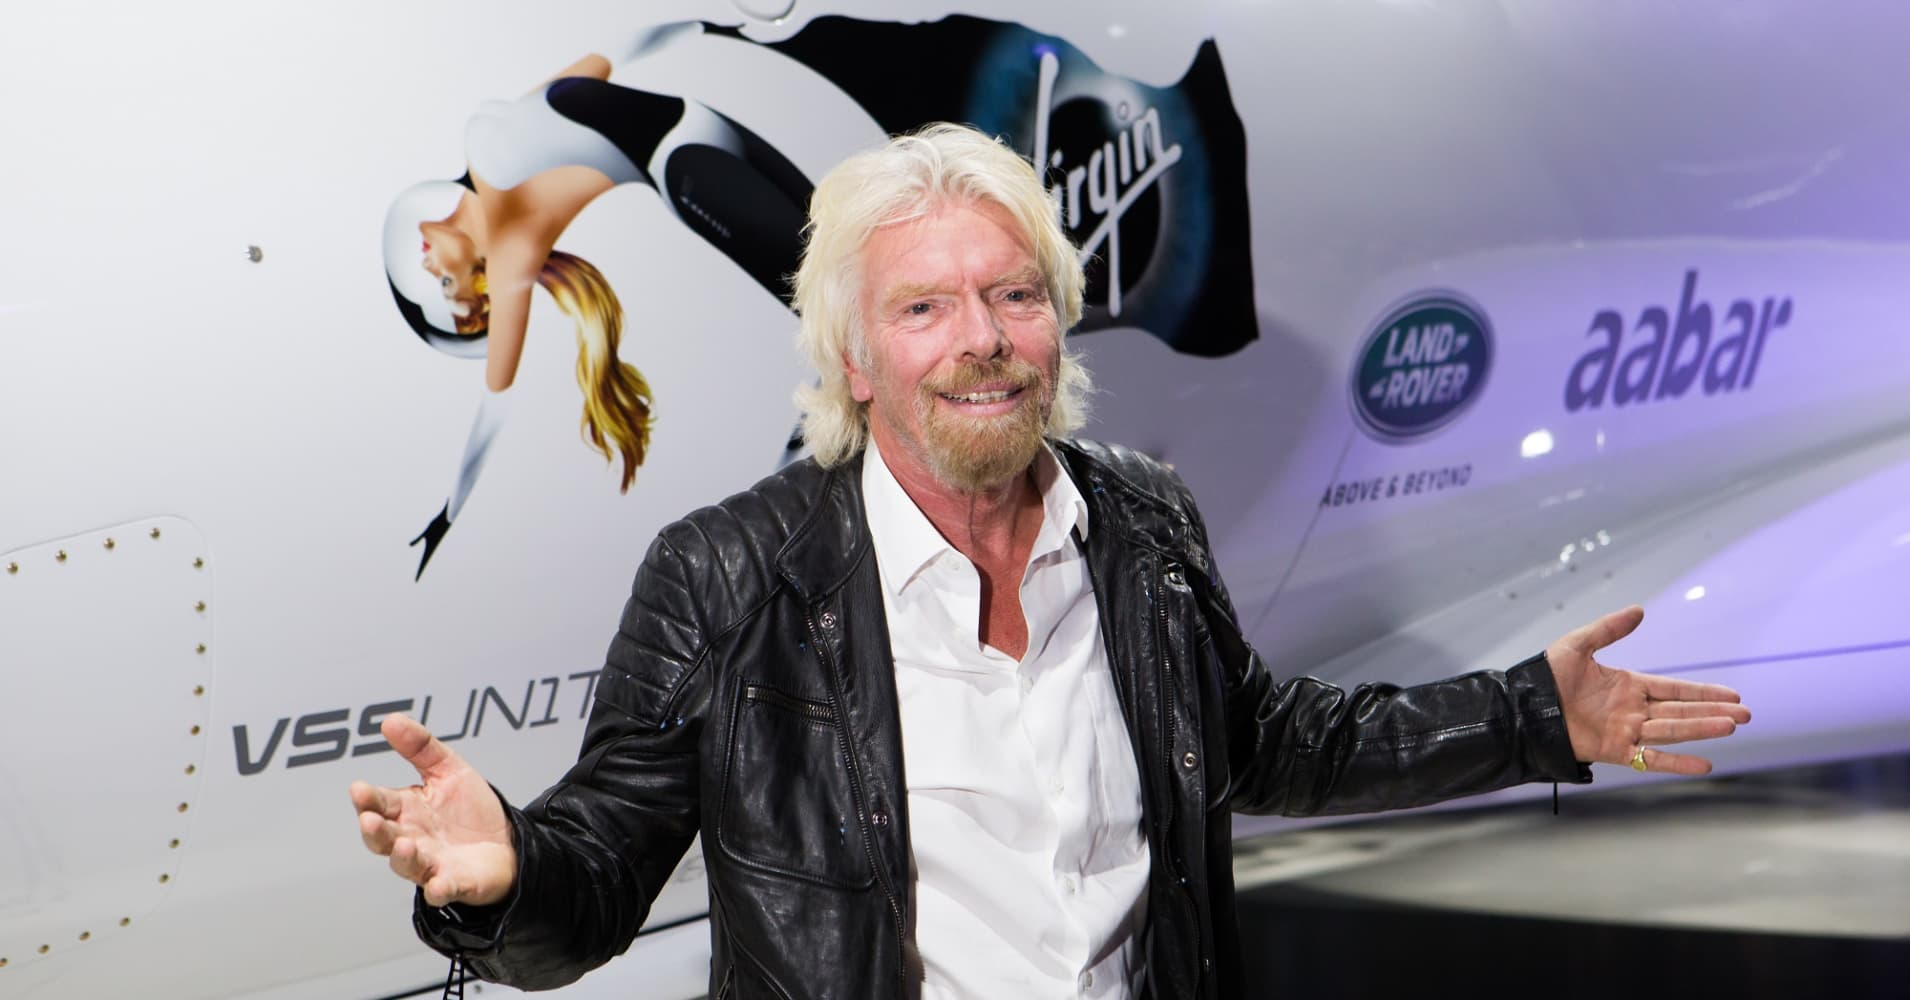 Sir Richard Branson in front of Virgin Galactic's Unity spacecraft